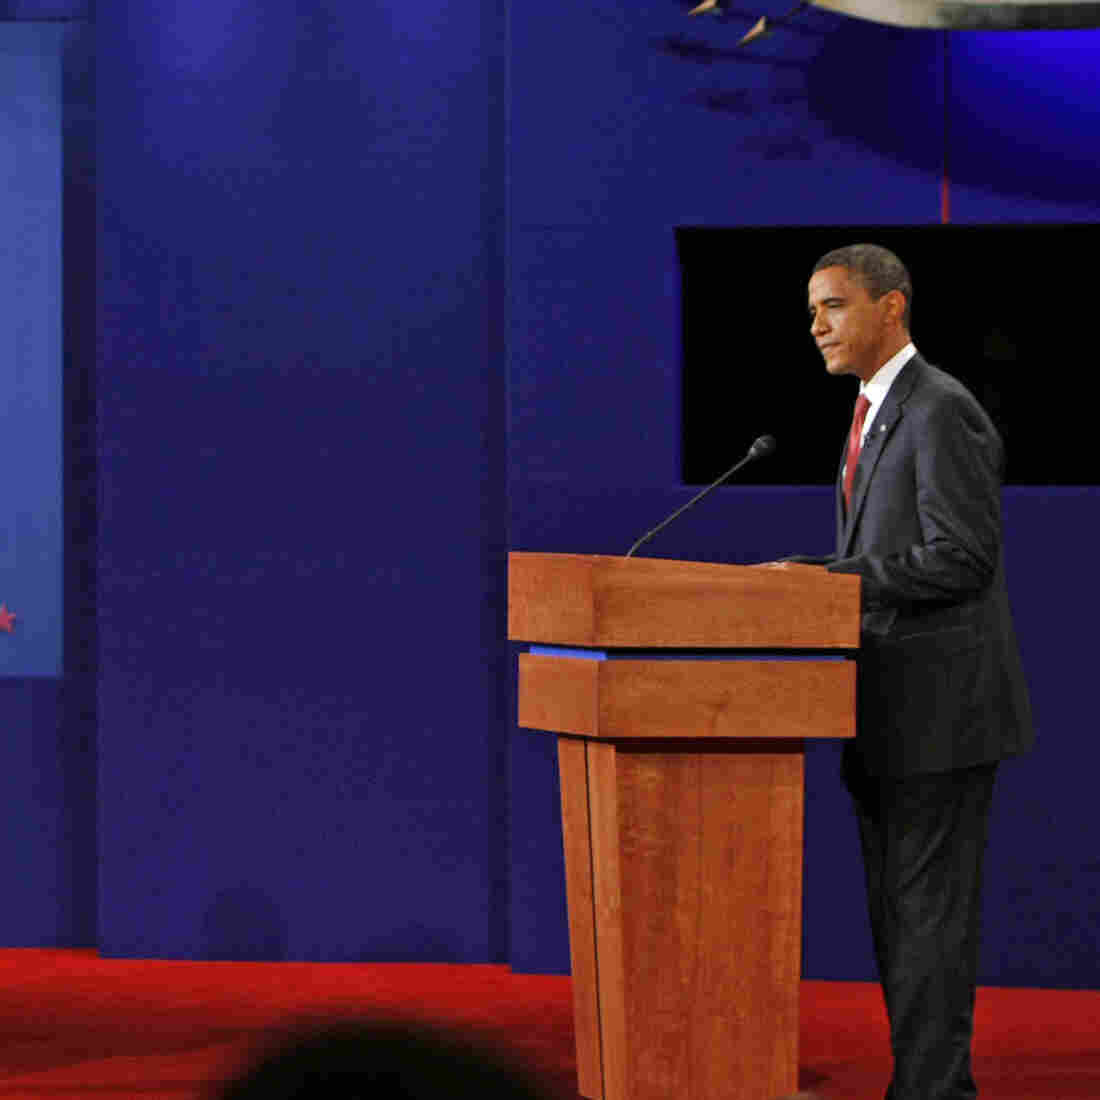 Presidential Debates: The One Area Where Campaigns Pitch Their Weakness